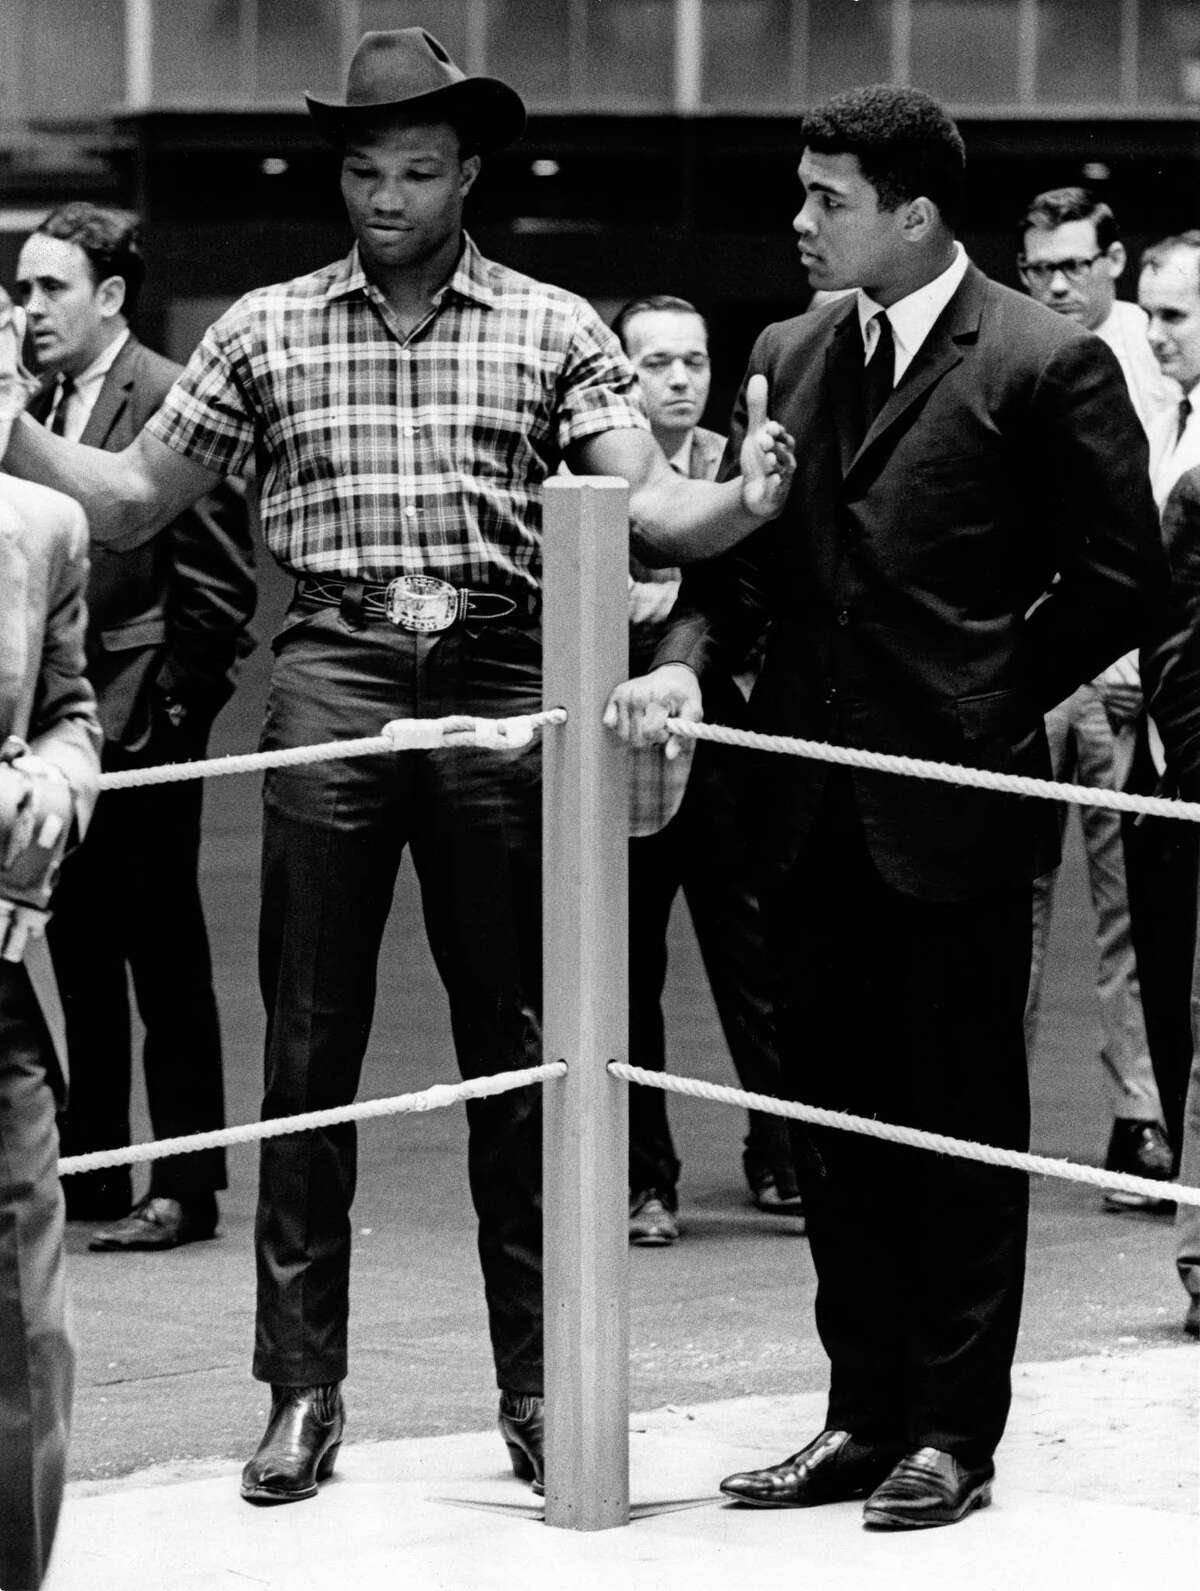 09/15/1966 - boxers Cassius Clay (aka Muhammad Ali) and Cleveland Williams at the Astrodome for official contract signing for title fight. The heavyweight title bout is scheduled to take place at the dome November 14, 1966.